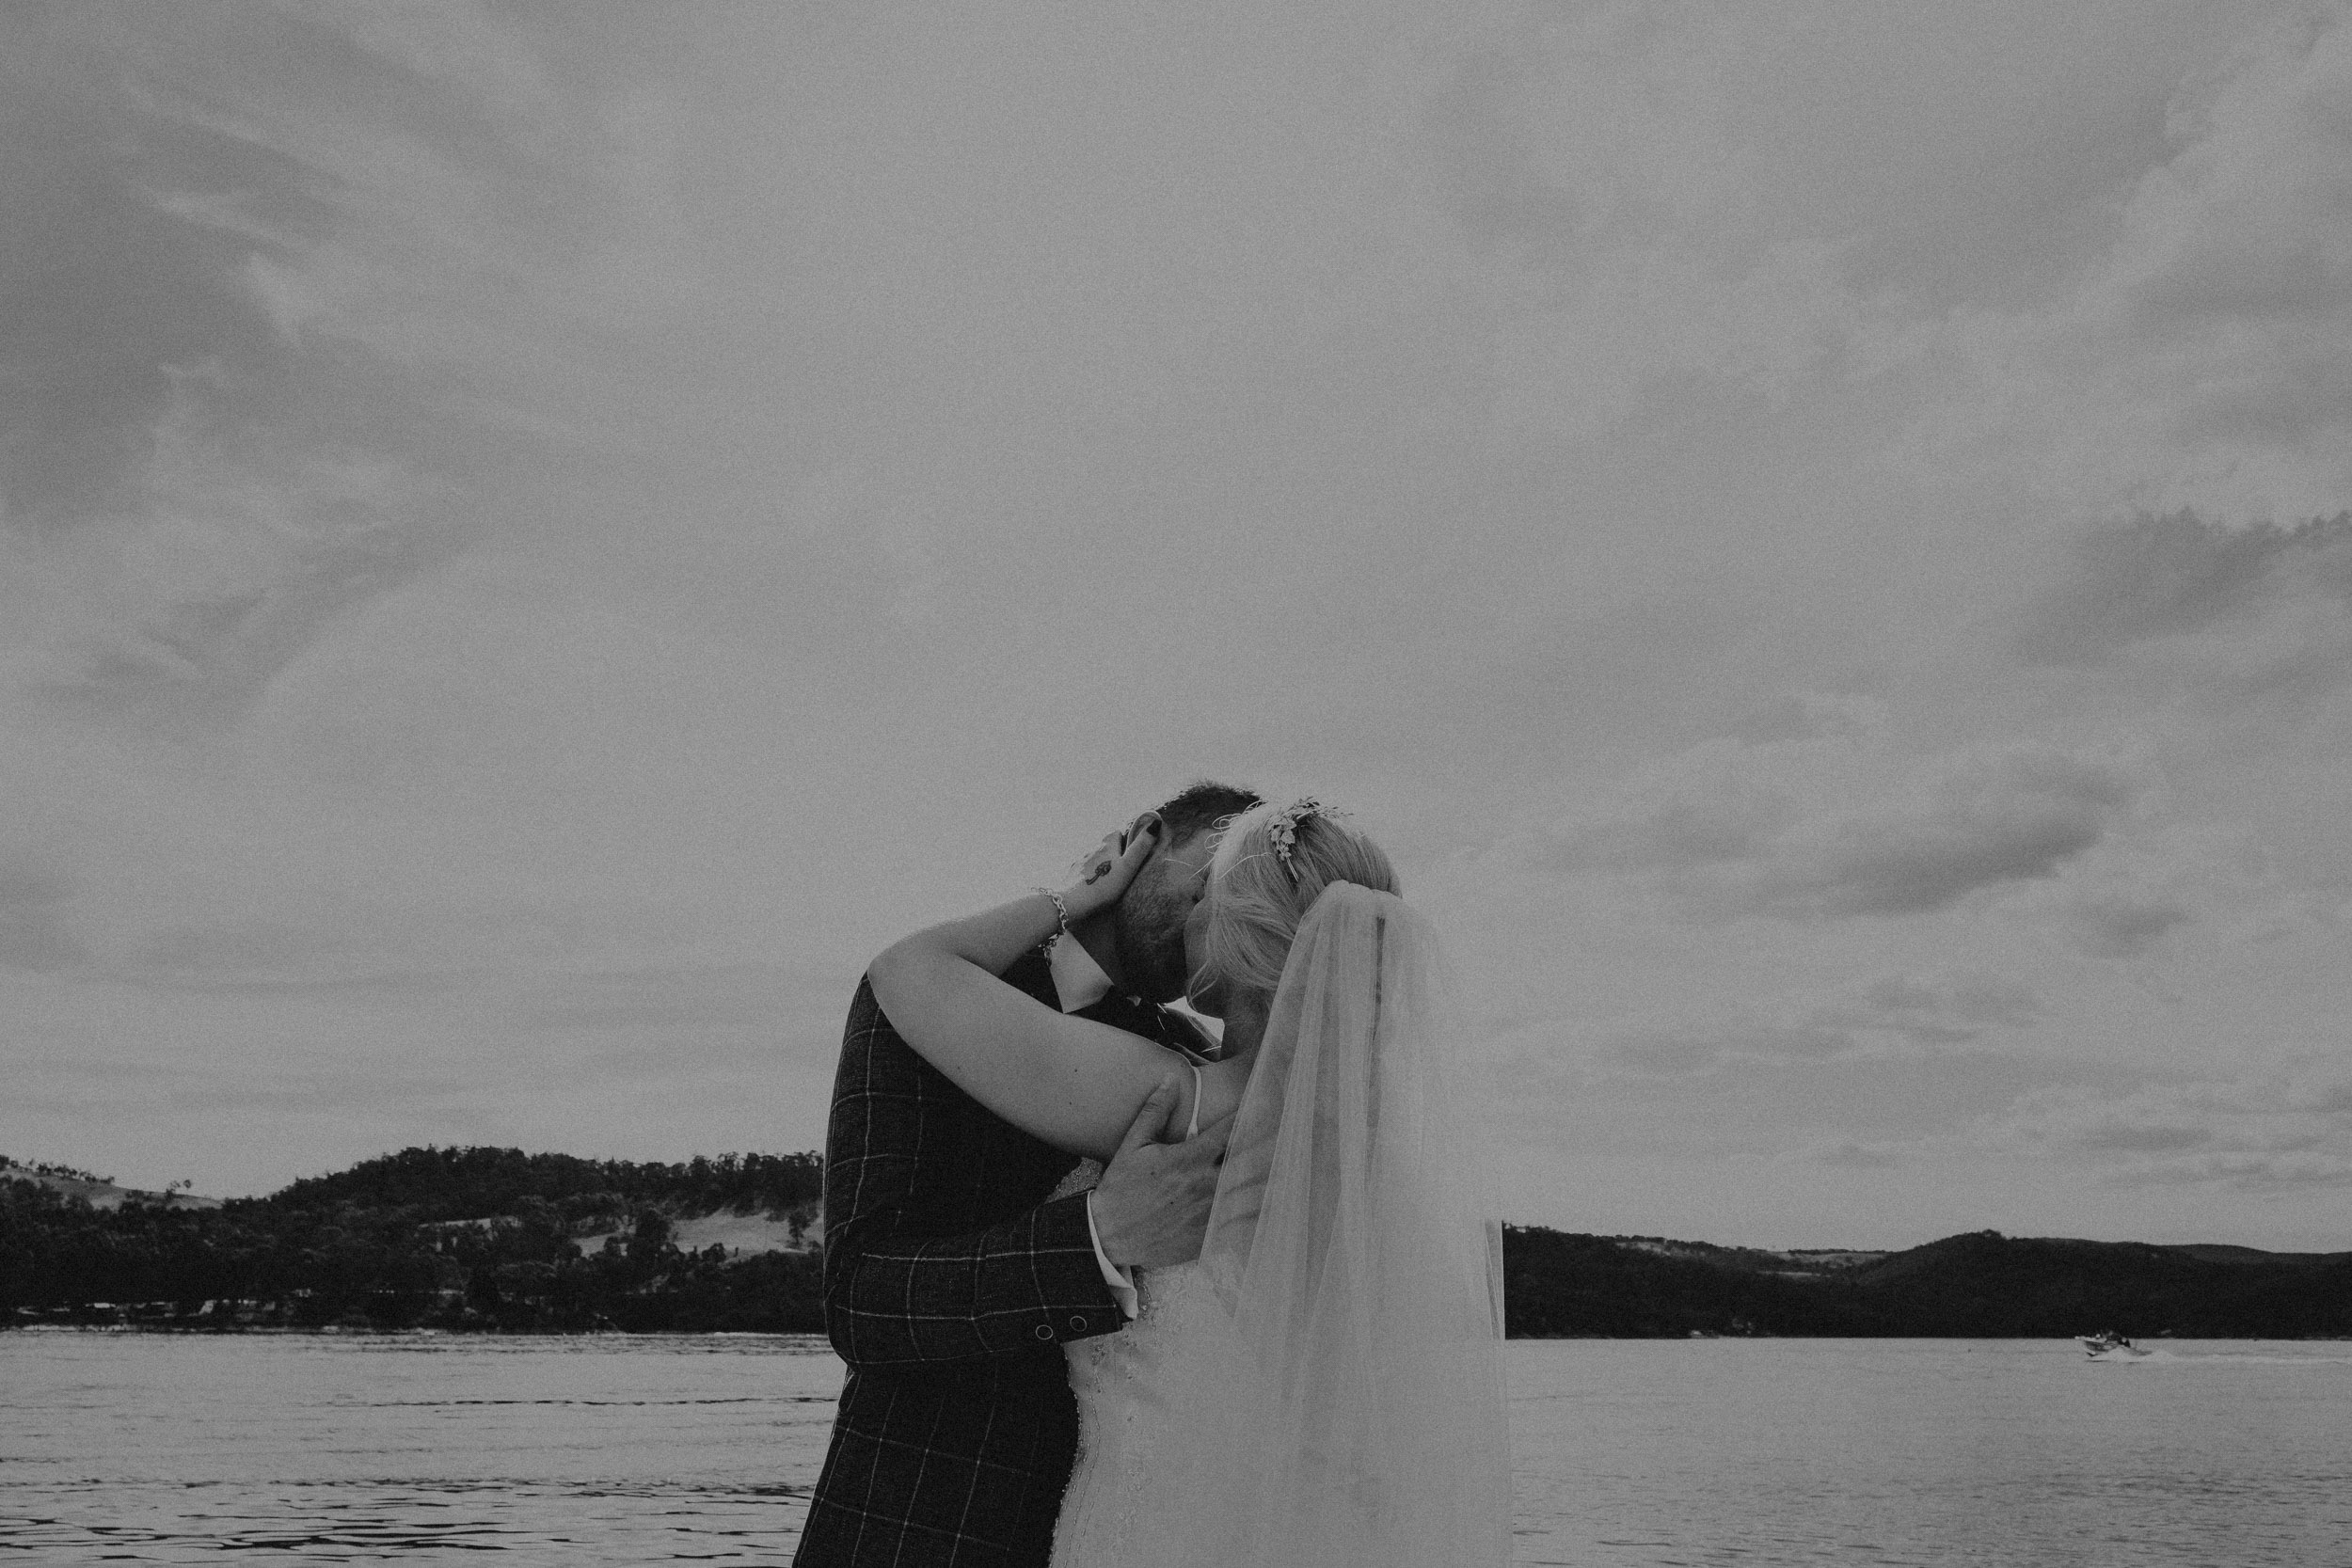 A&A_elopement wedding photography_kings & thieves_blog (18 of 40).jpg